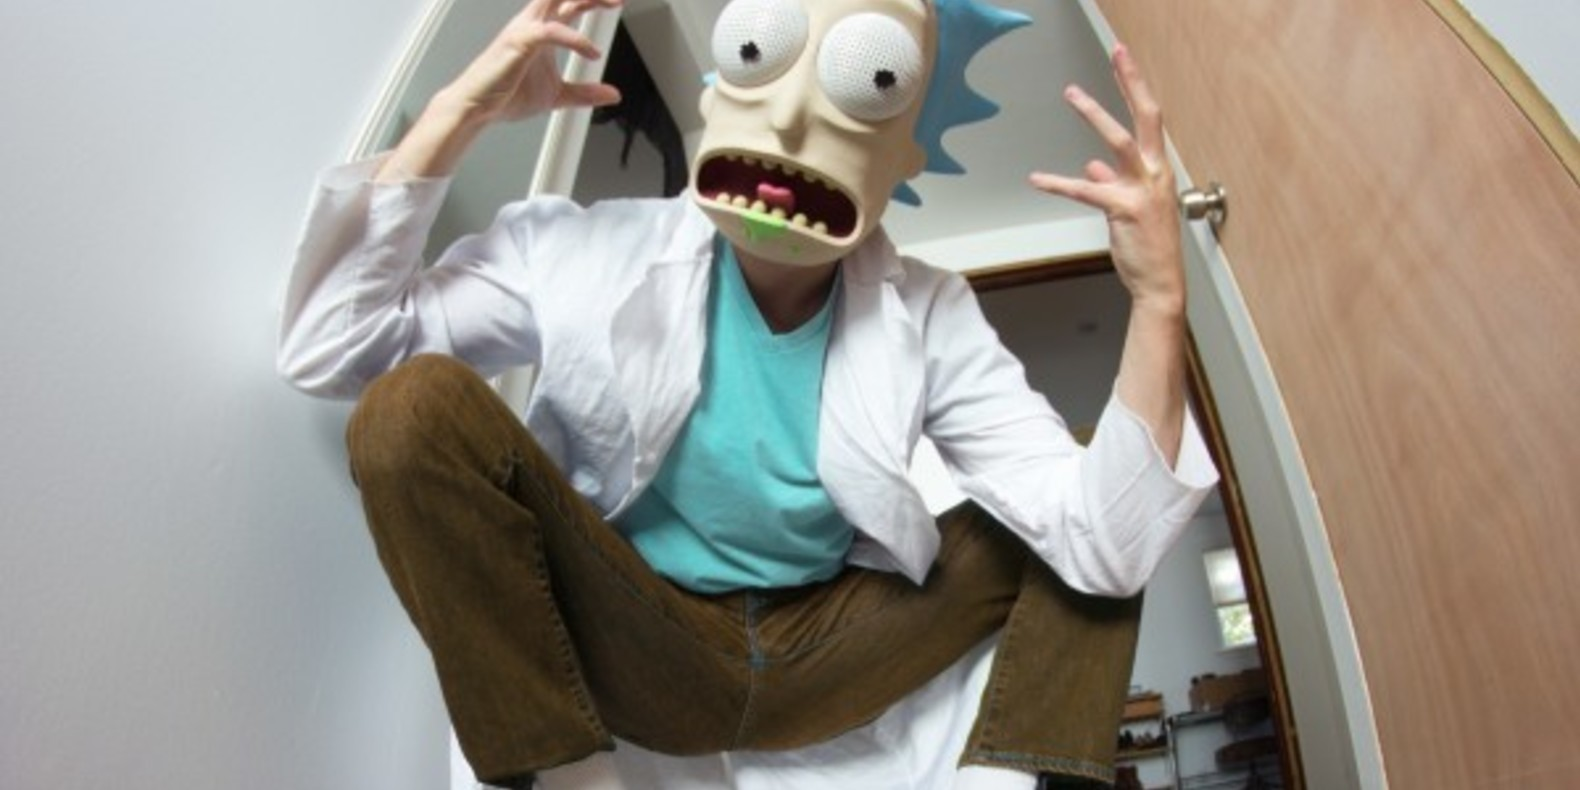 rick-sanchez-masque-fichier-3d-cults-3d-stl-rickmorty-1